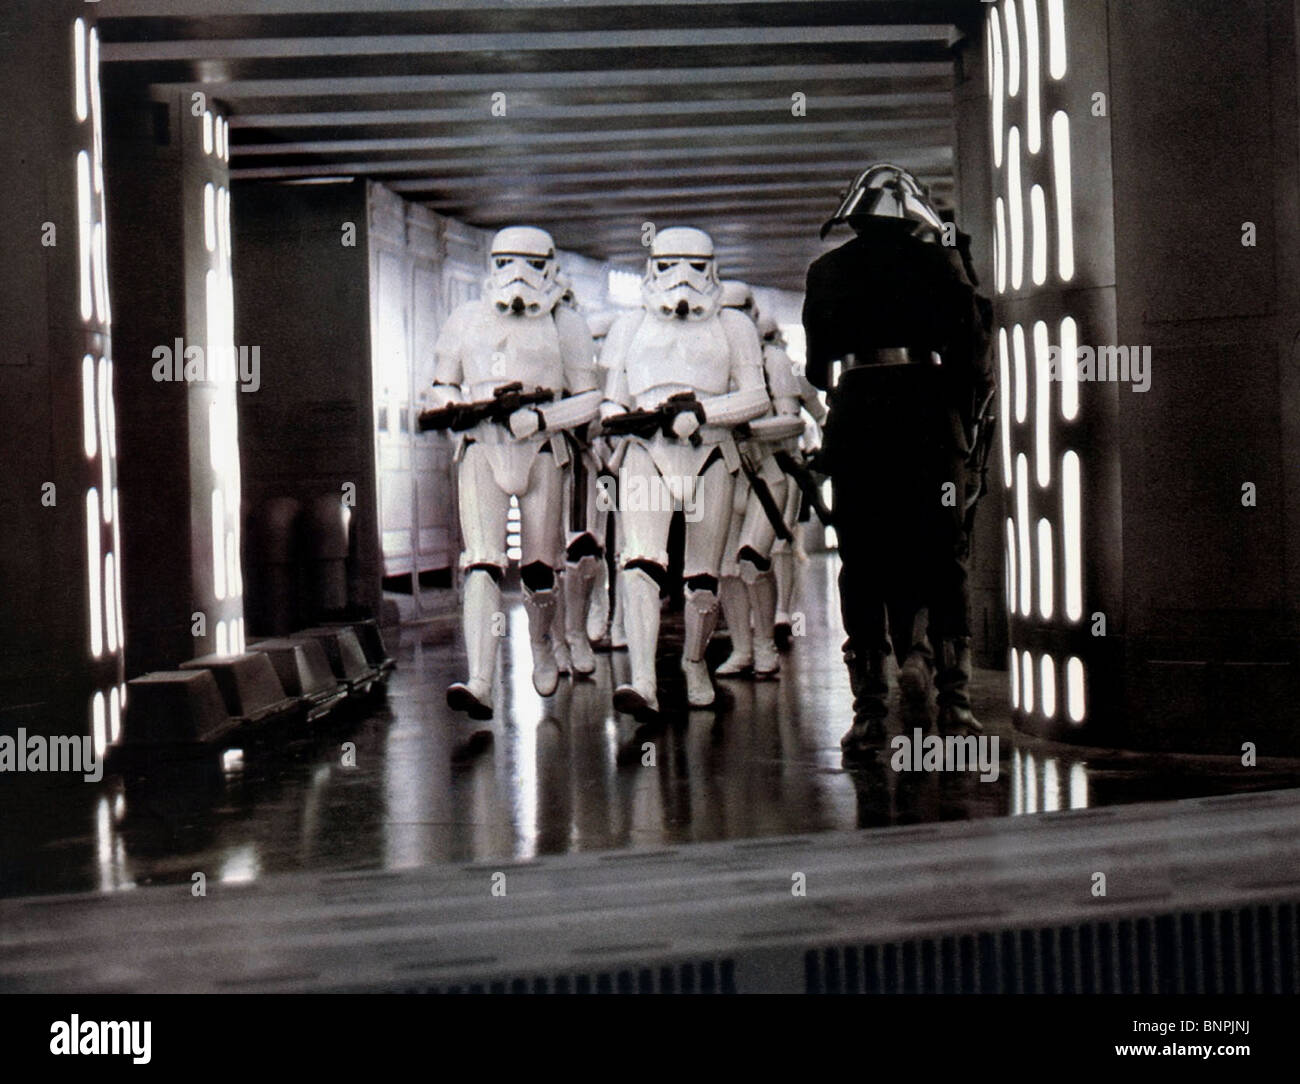 Stormtroopers Star Wars Episode Iv A New Hope 1977 Stock Photo Alamy